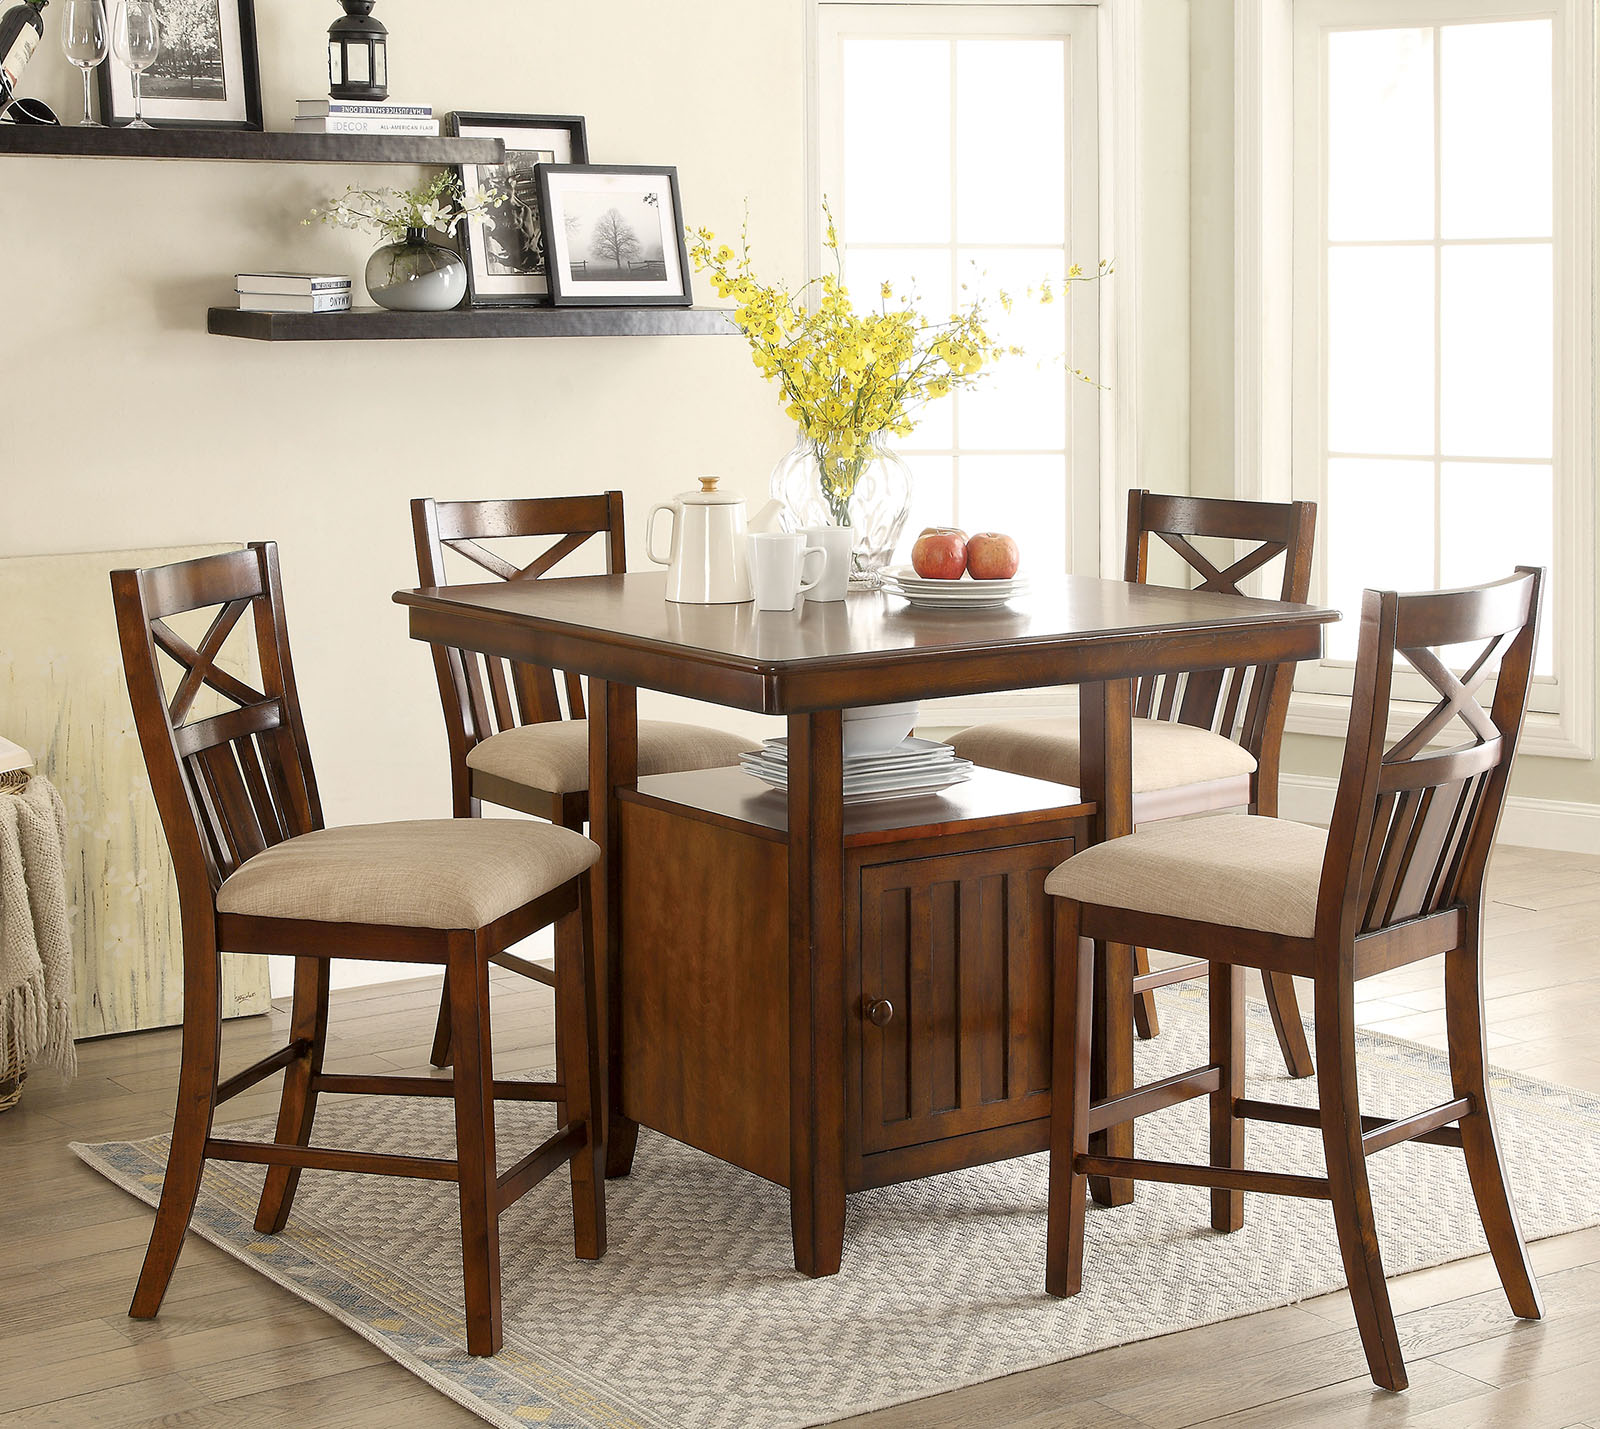 Dining Room - Buy Now